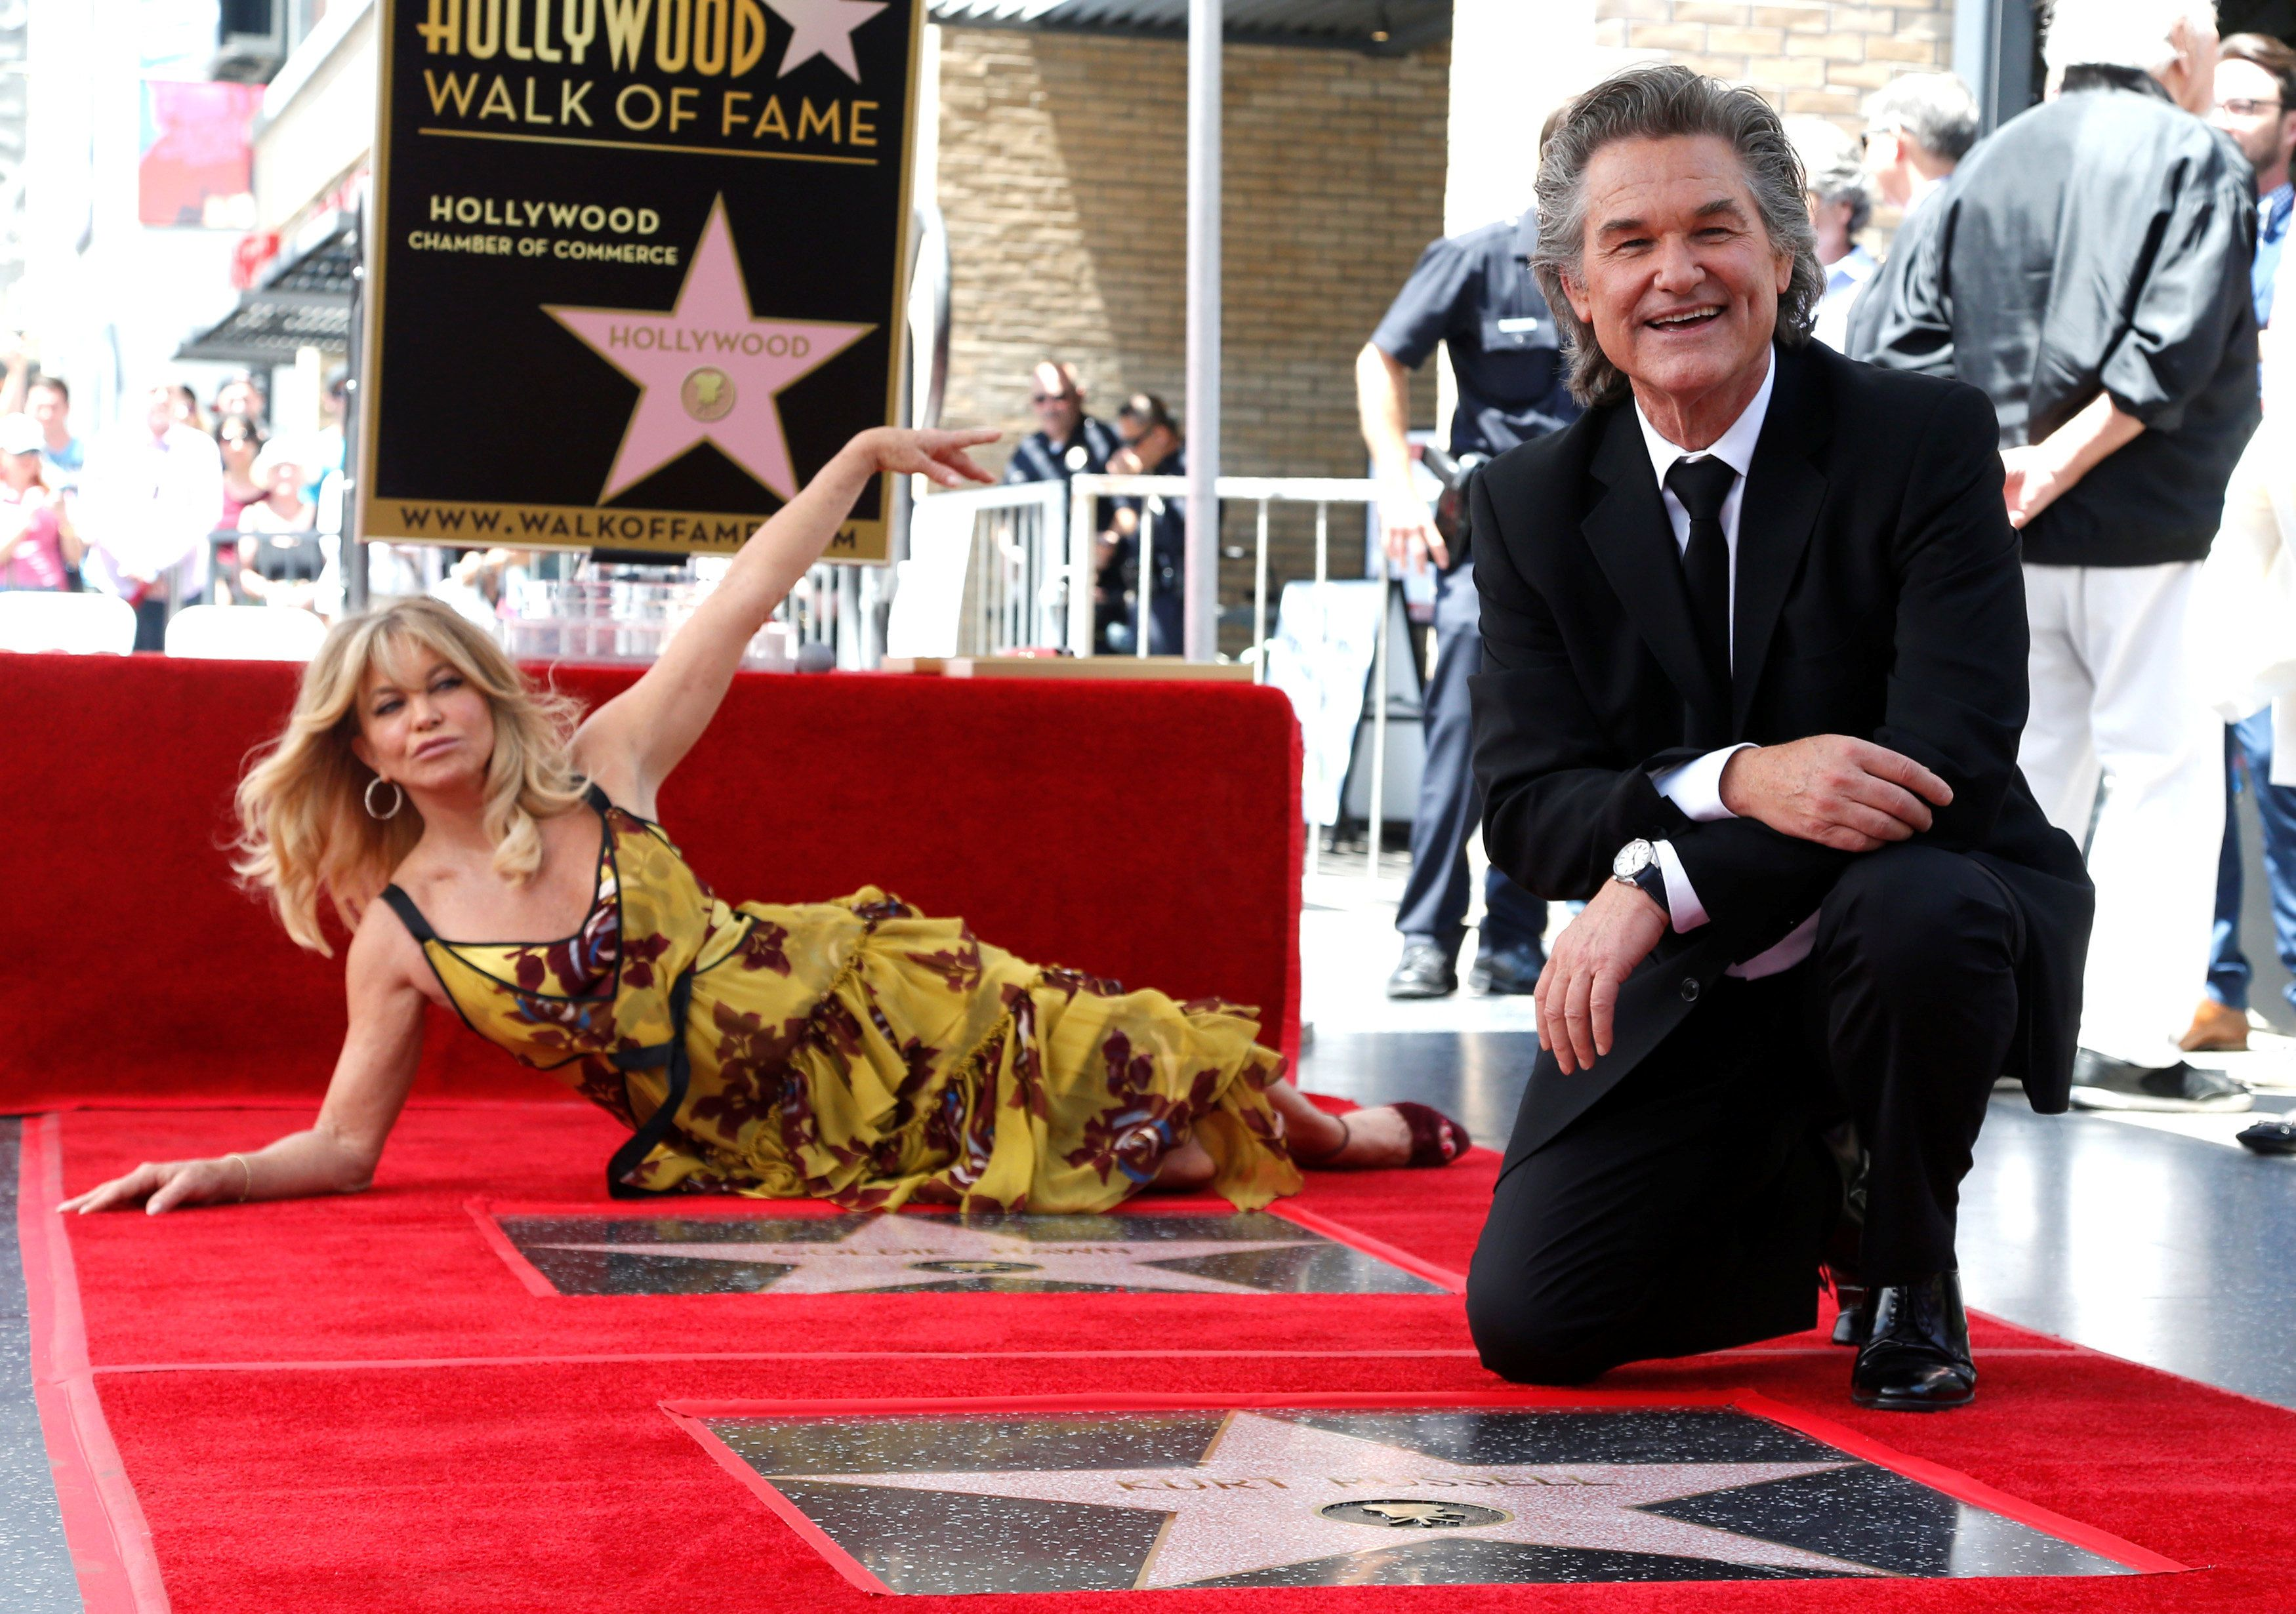 Actors Kurt Russell and Goldie Hawn pose on their stars after being unveiled on the Hollywood Walk of Fame in Los Angeles, California, U.S. May 4, 2017.   REUTERS/Mario Anzuoni